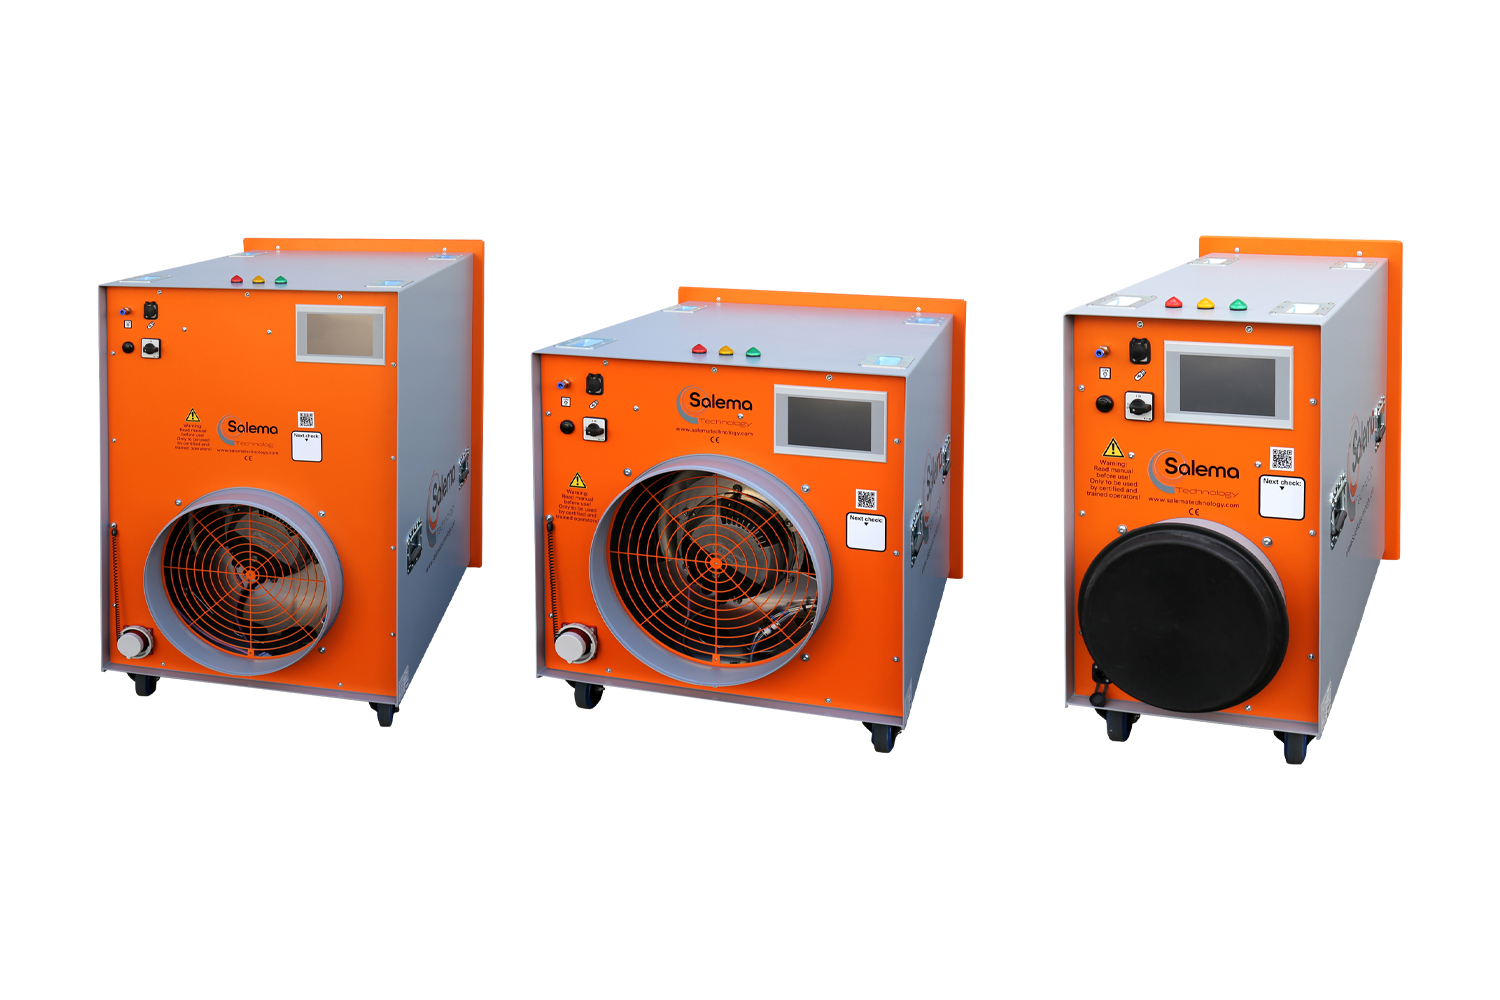 negative-air-machine-cleaning-purification-pressure-unit-device-air-mover-extracteur-purificateur-d'air-unité-de-purification-de-l'air-dépression-appareil-à-pression-négative-purification-d'air